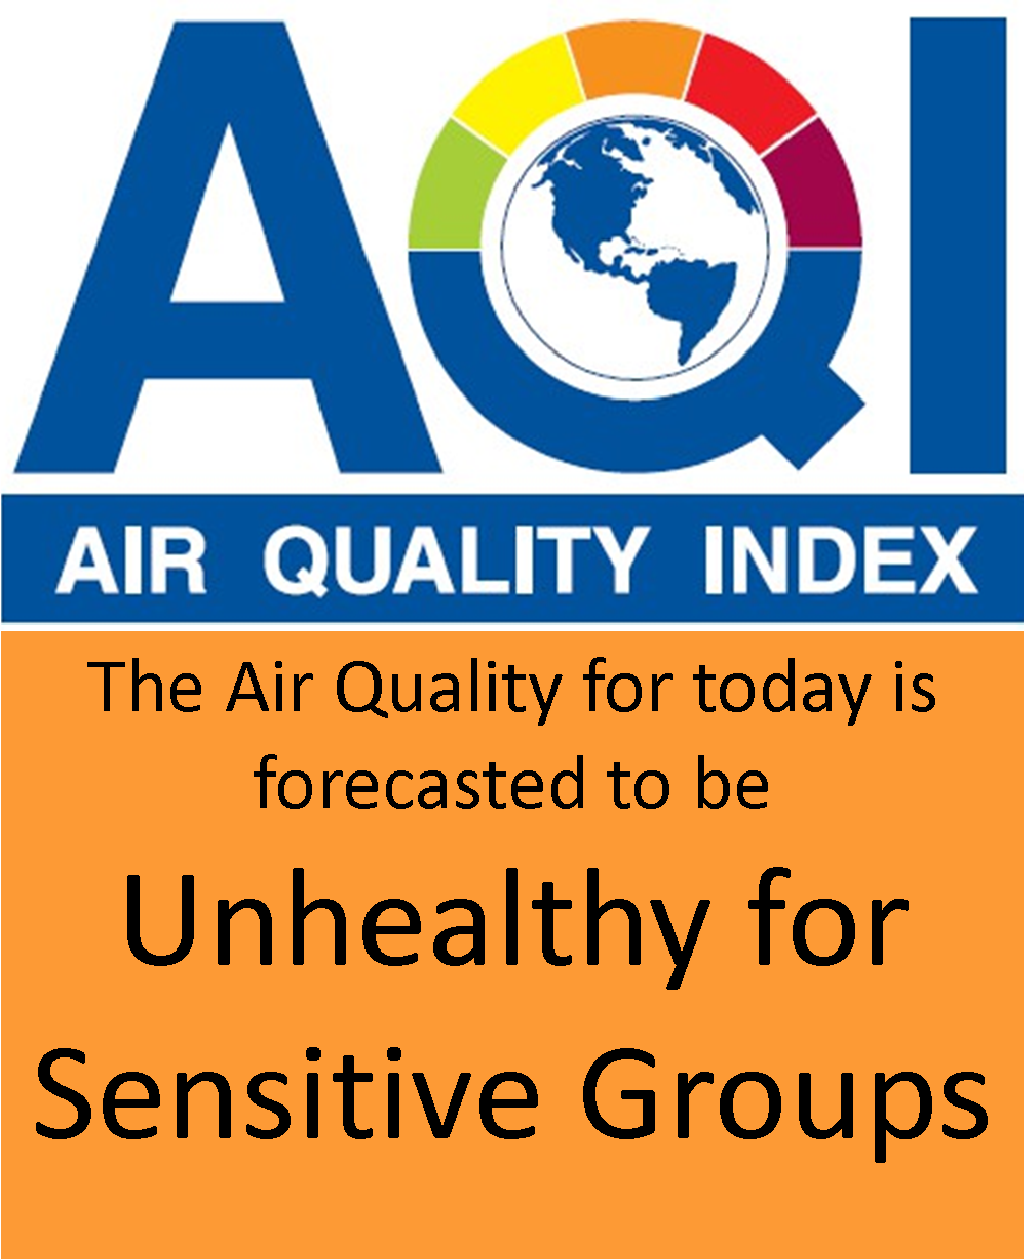 The Air Quality Index for August 4th is forecasted to be Unhealthy for Sensitive Groups